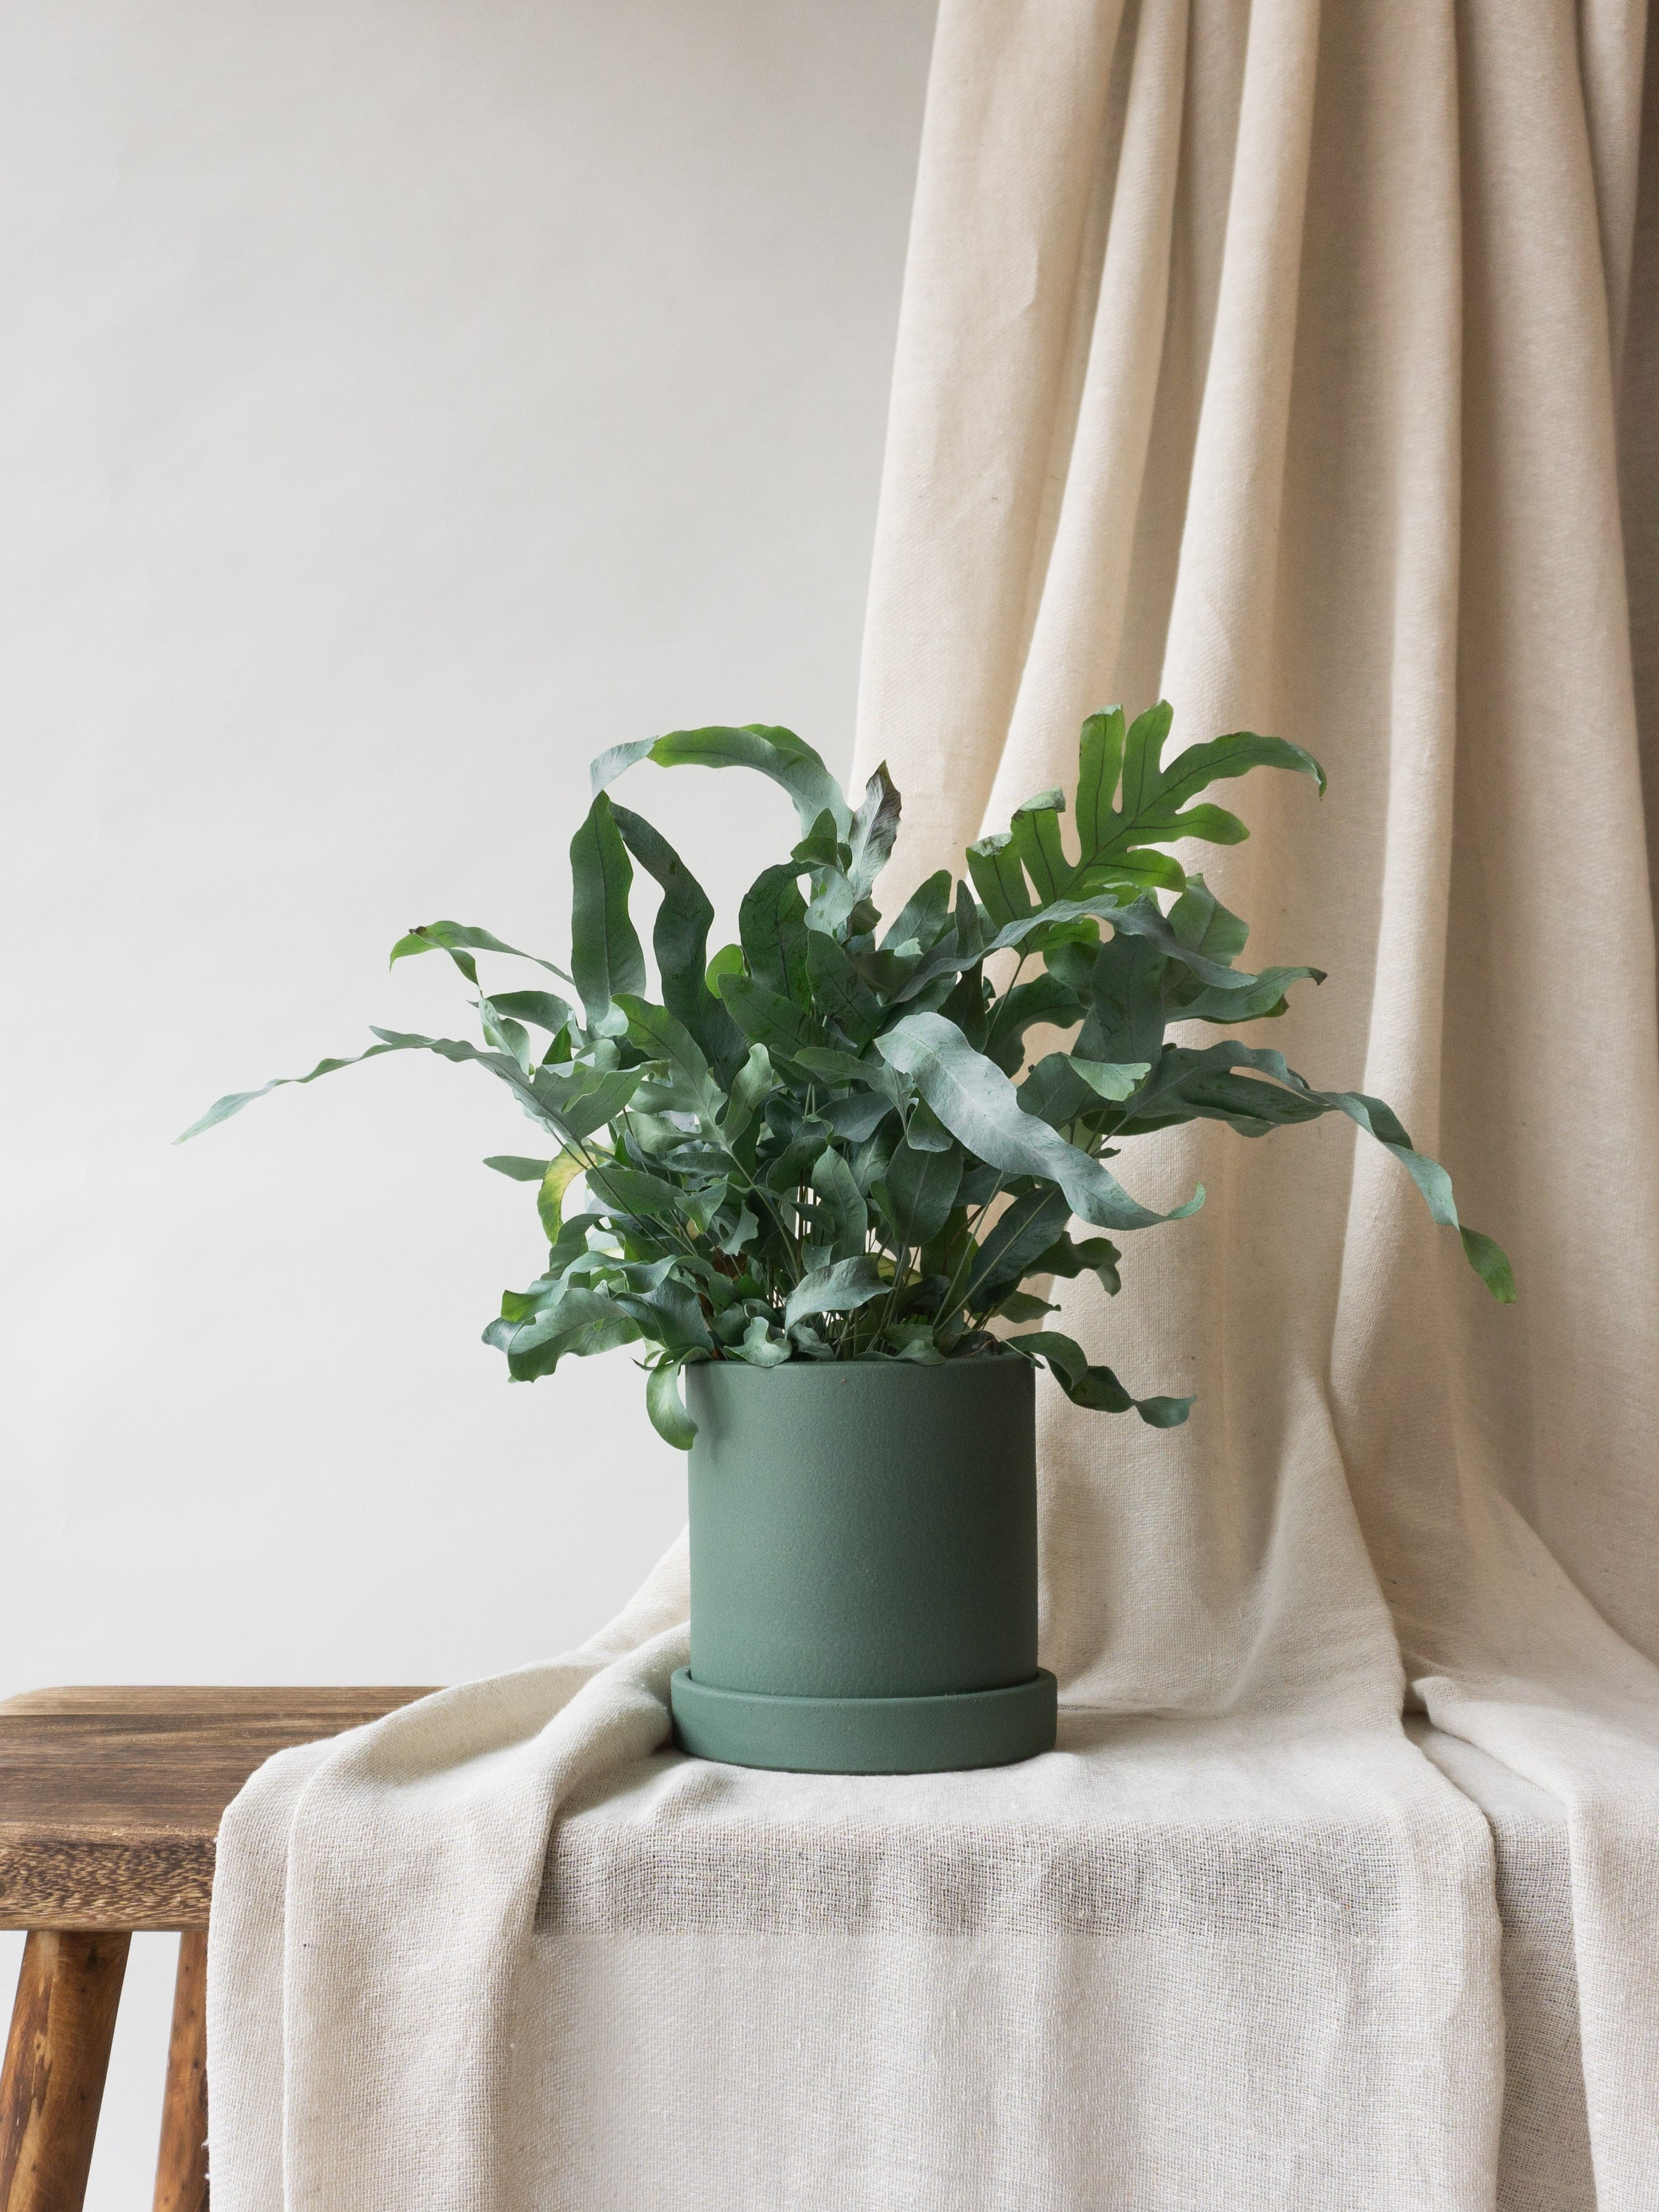 Plant care tips by Leaf Envy  Blue Star Fern light, watering, humidity, fertiliser requirements